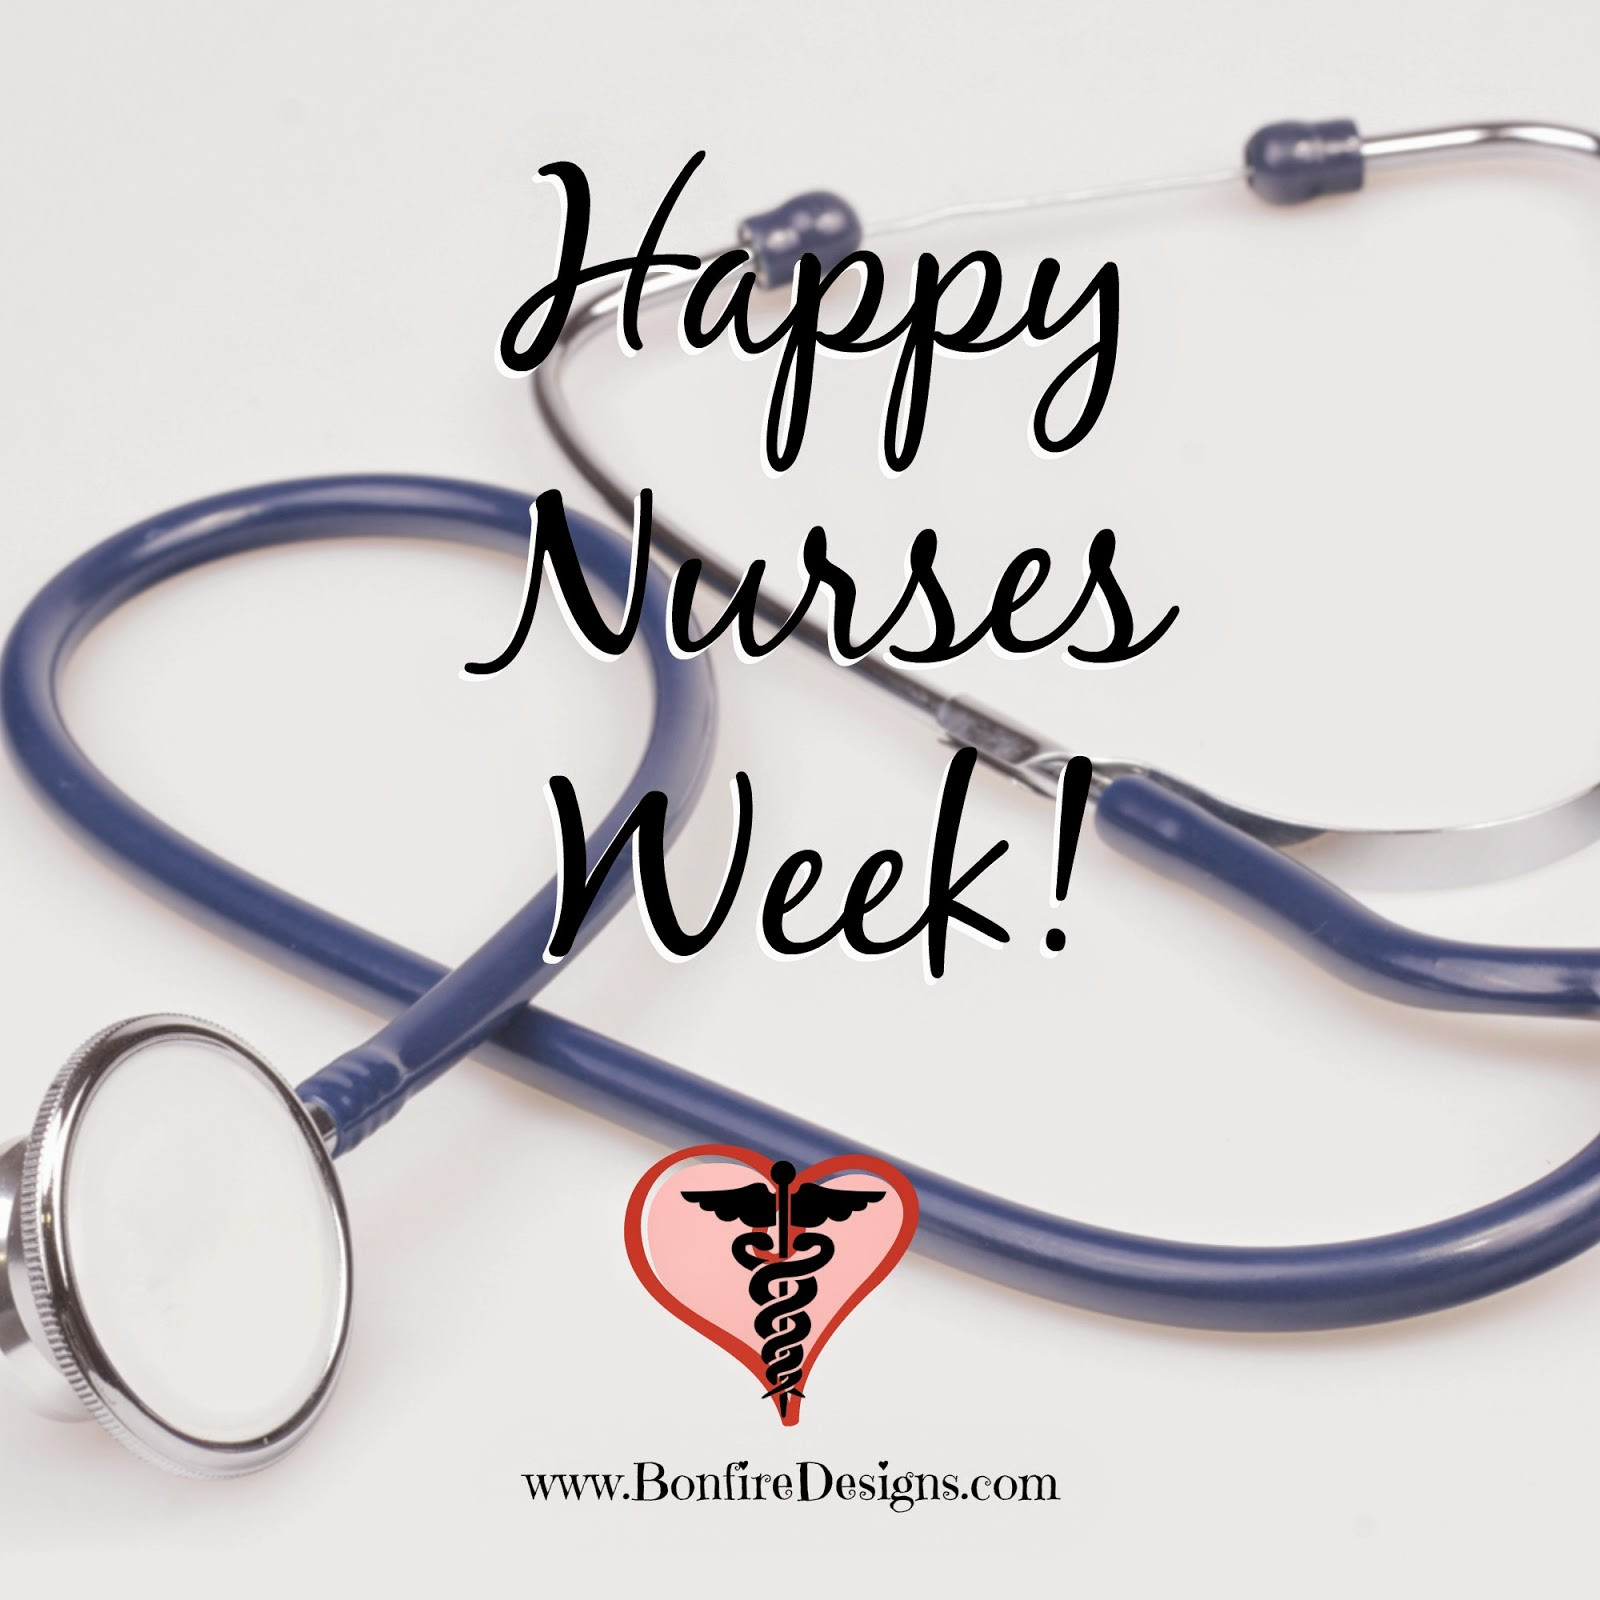 Happy Nurses Week Clip Art N5 free image.